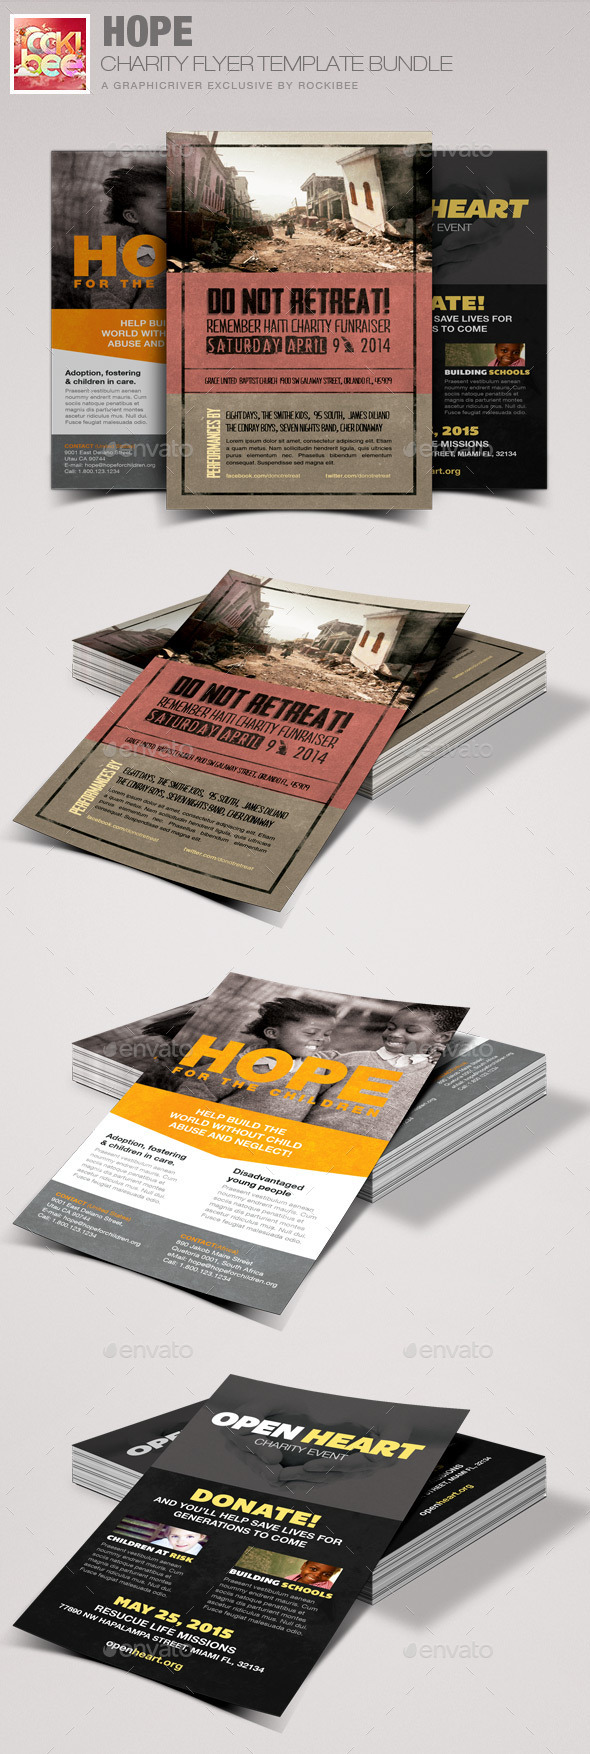 Hope Charity Flyer Template Bundle - Events Flyers